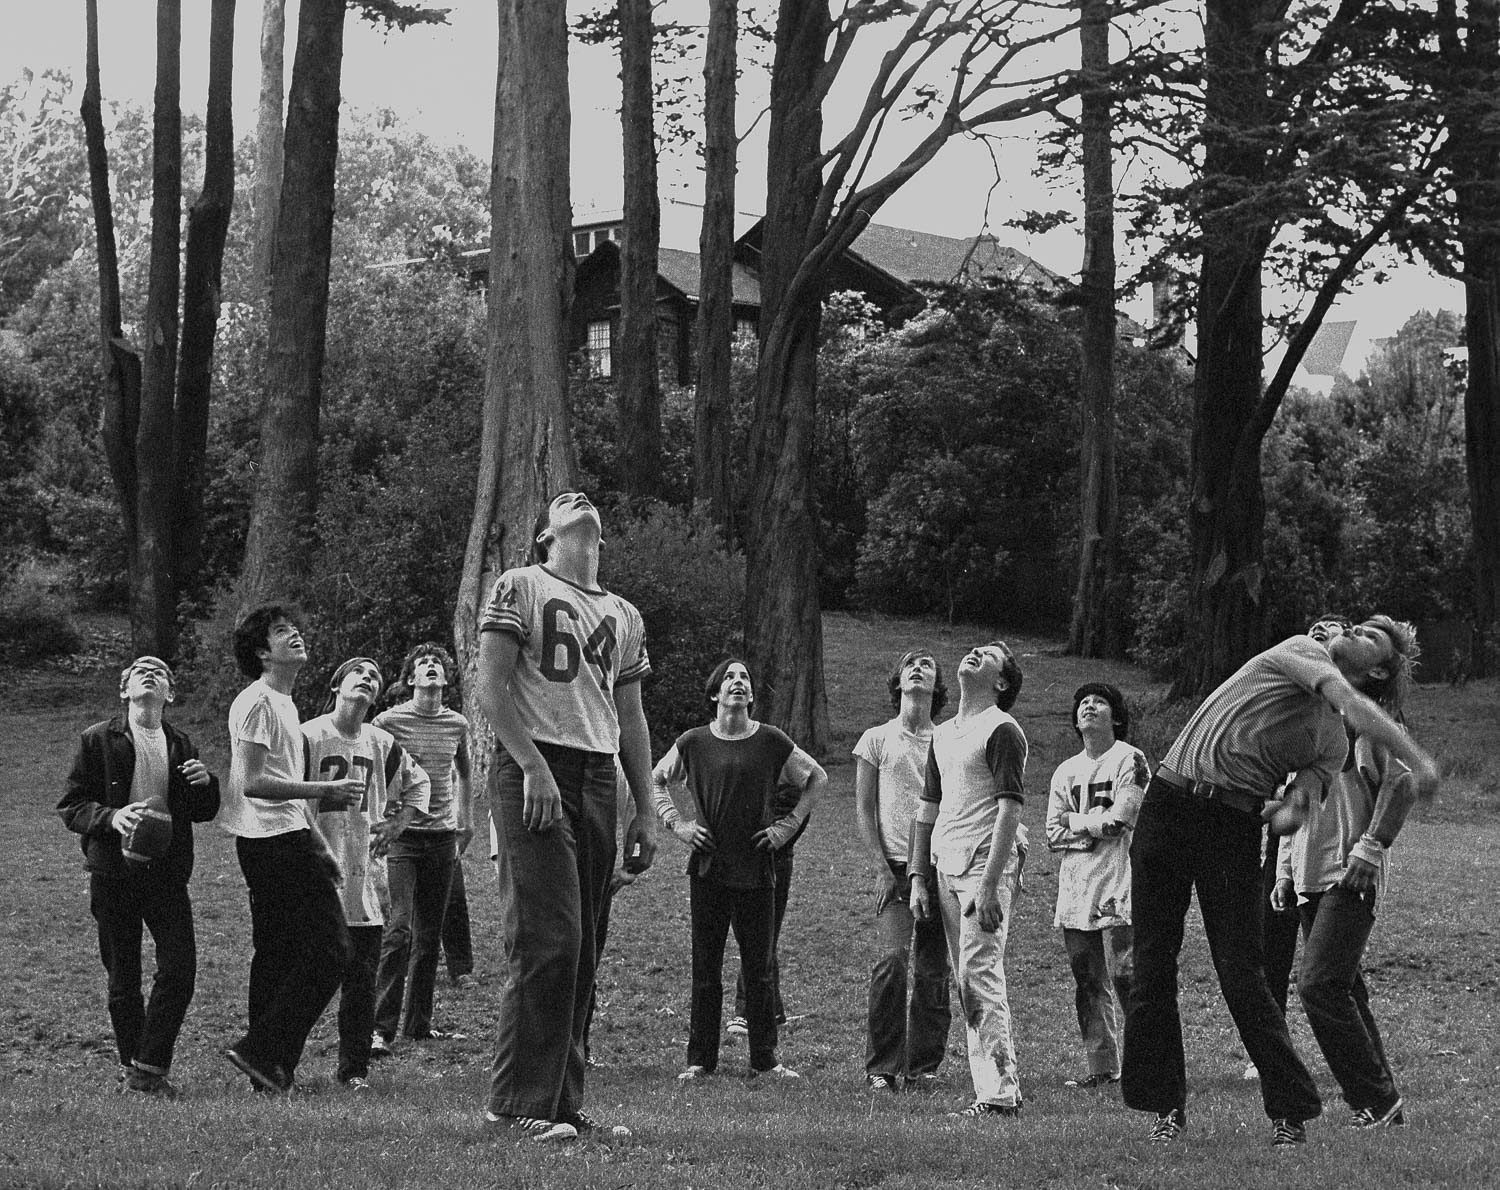 Boys throwing a football as high as they can, in a park on Lake Street in San Francisco's Richmond district.